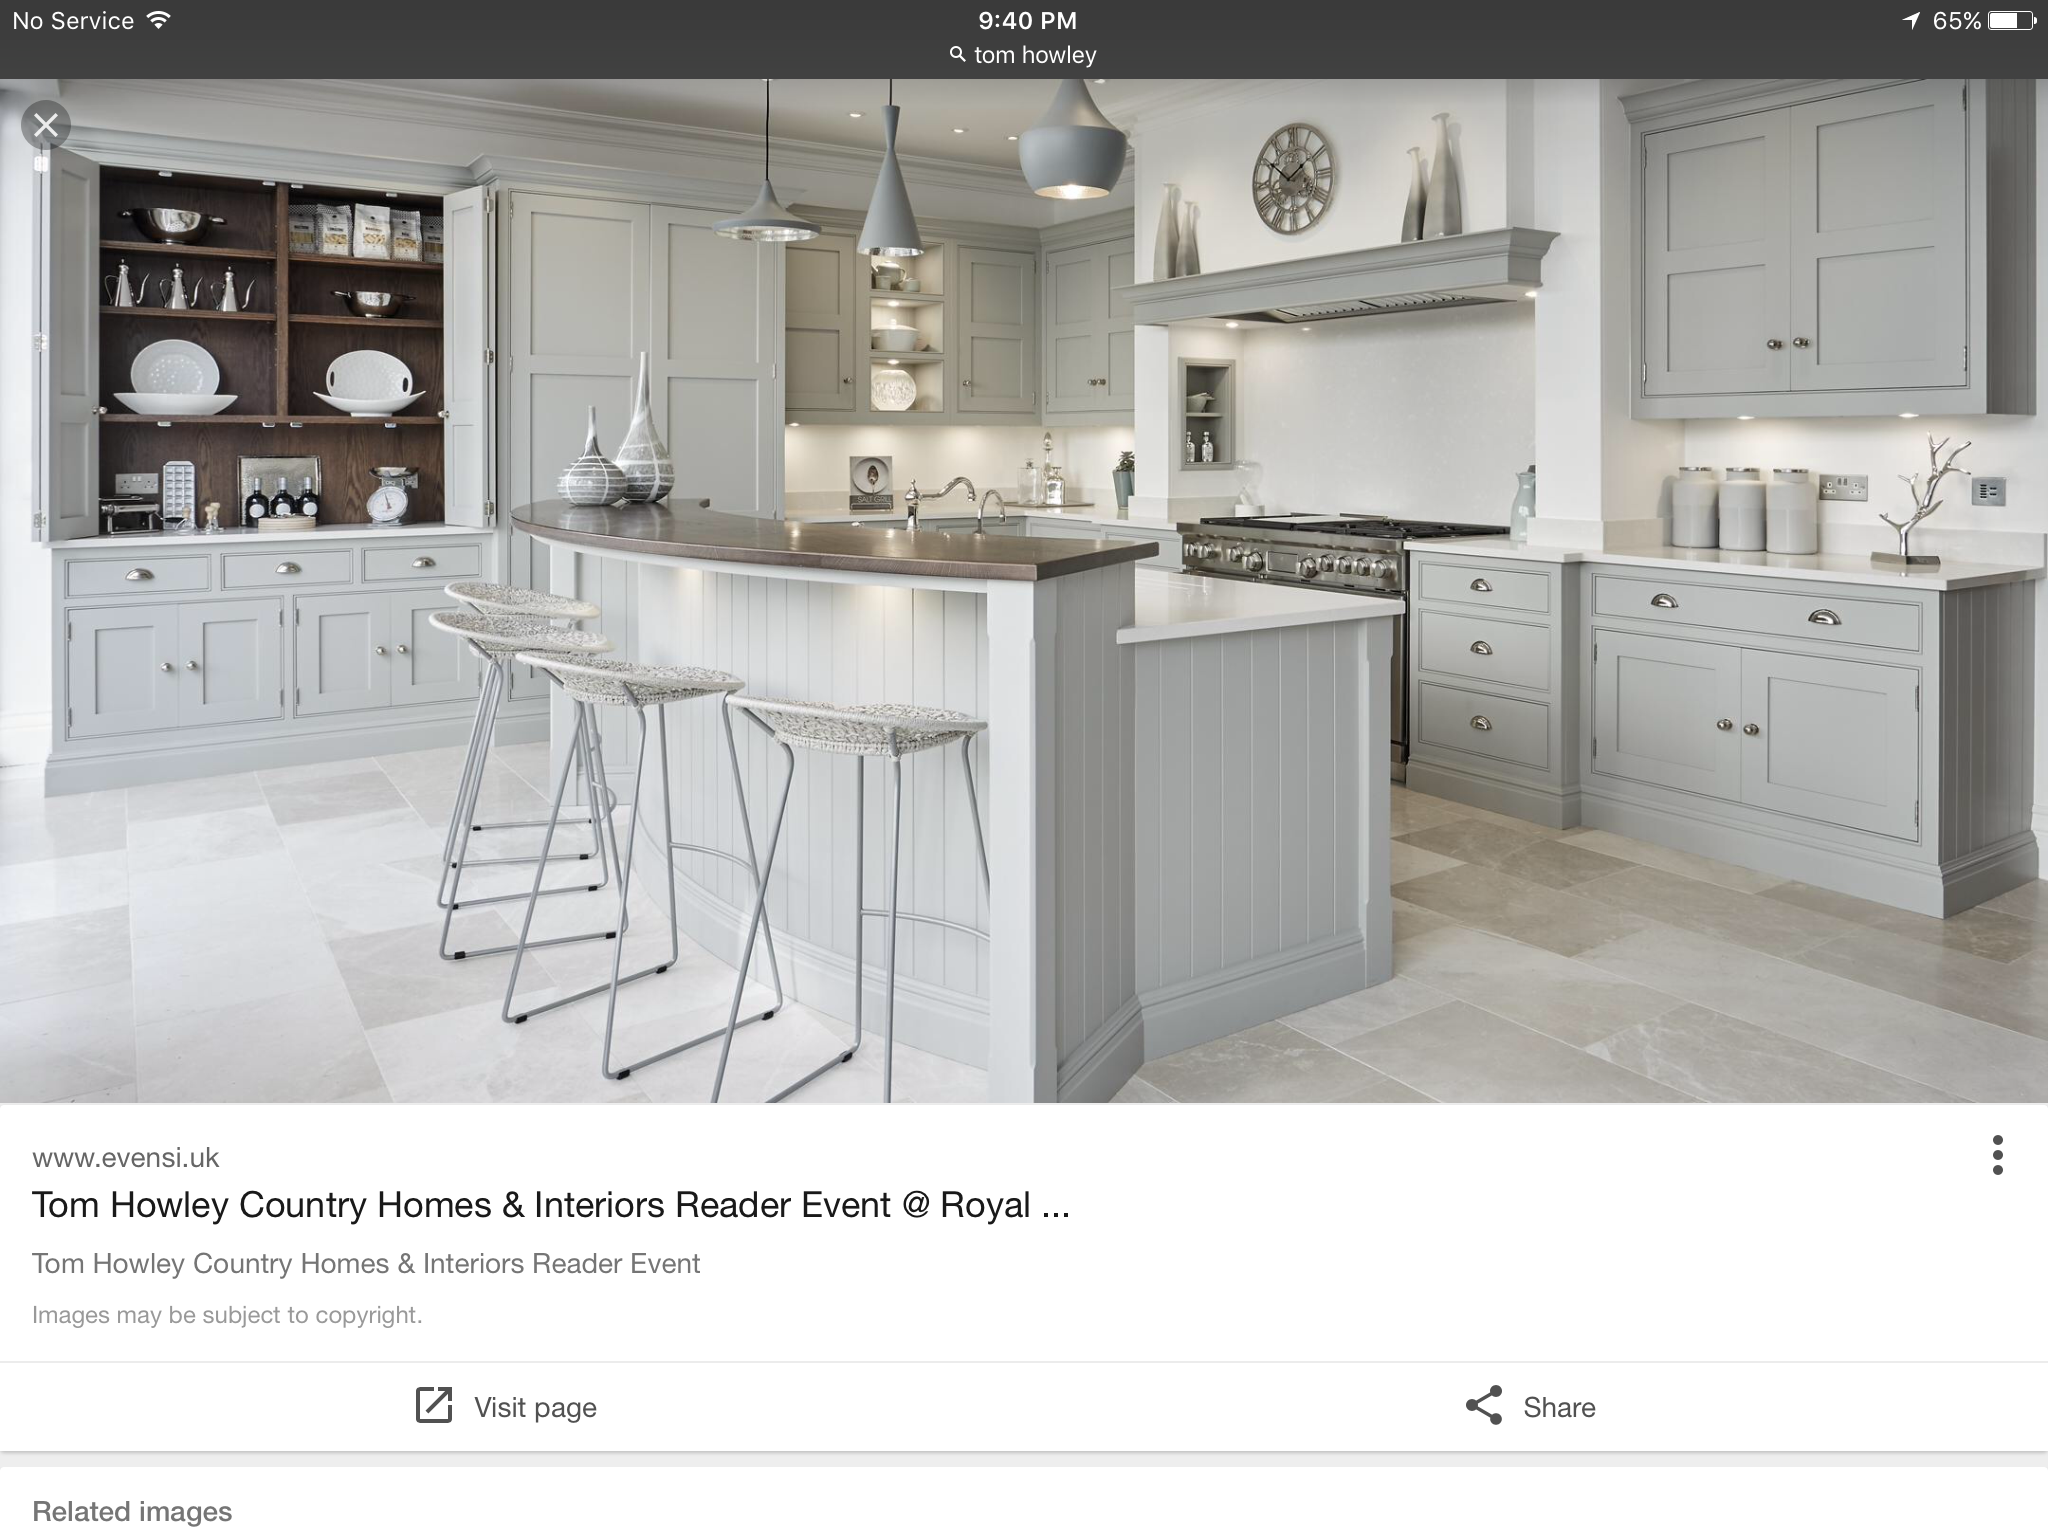 Explore Kitchen Grey, Grey Kitchens, and more!